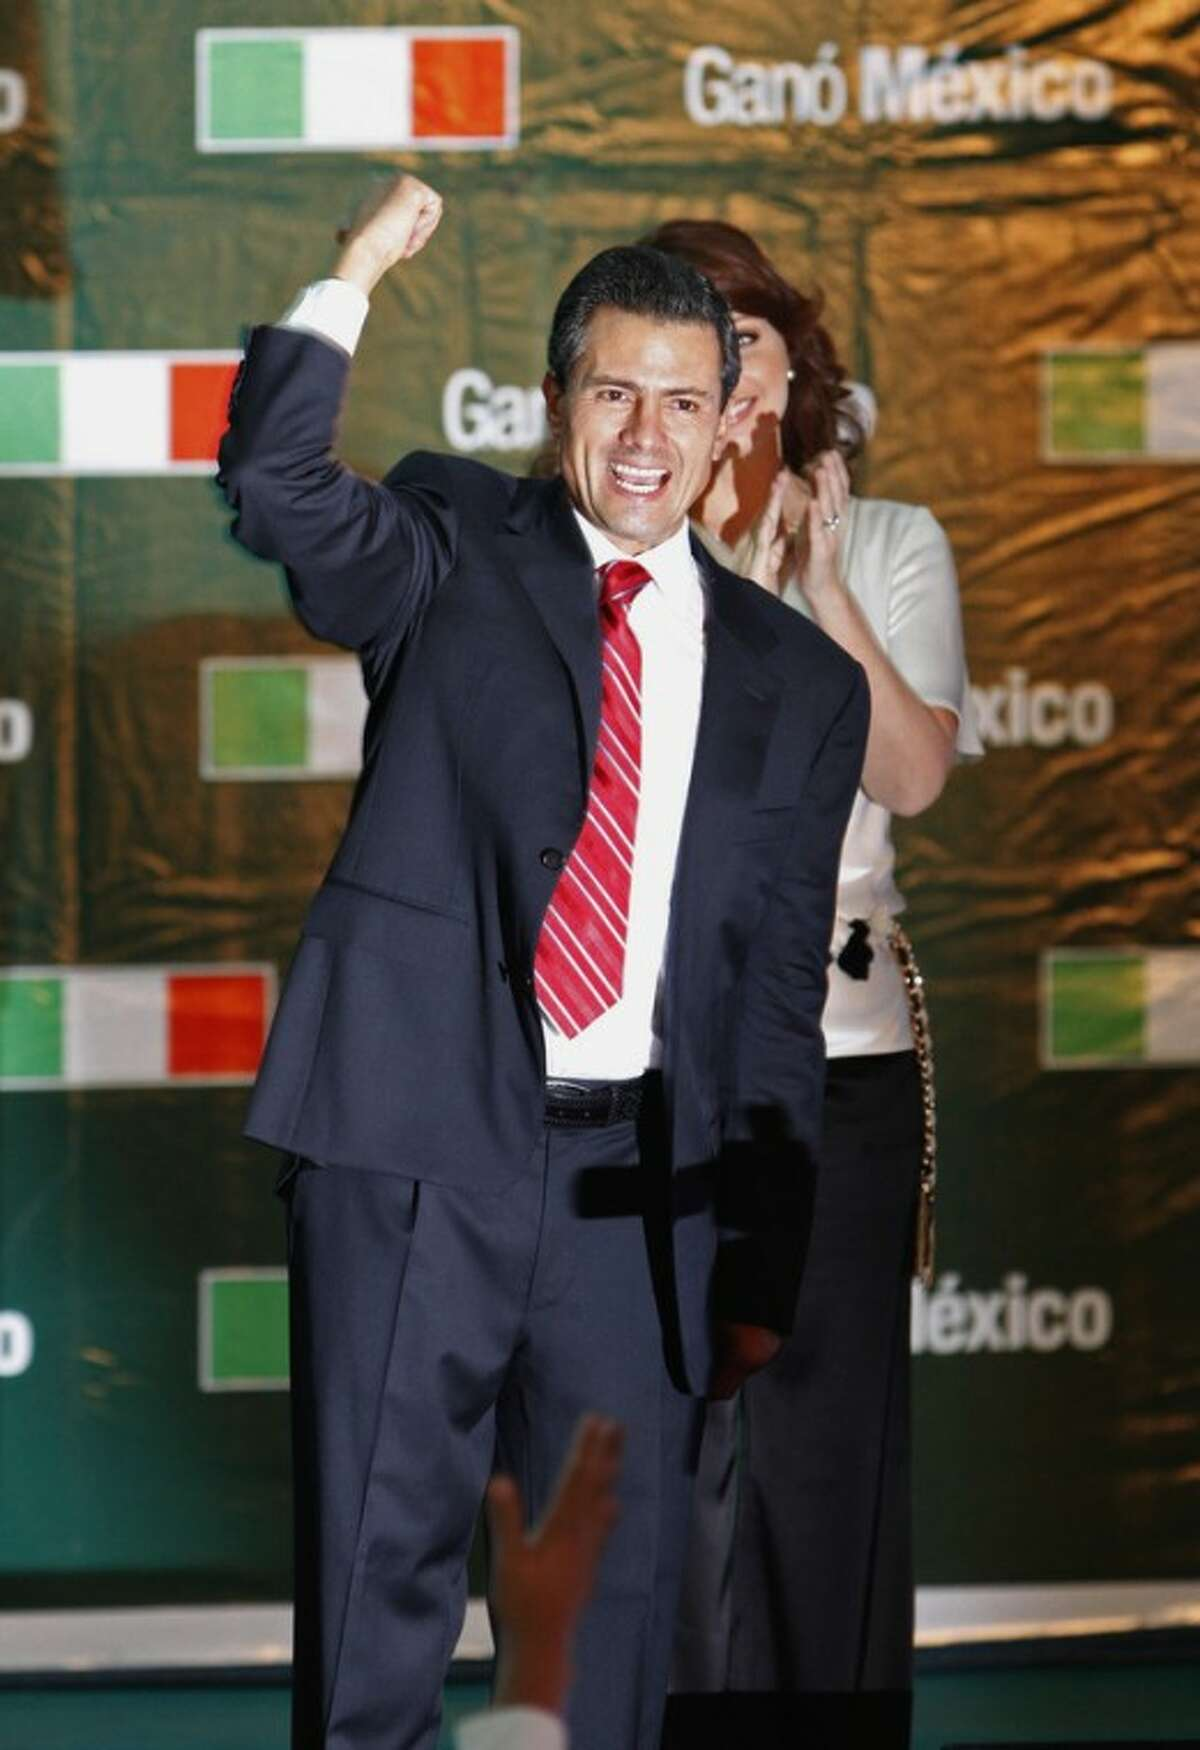 Presidential candidate Enrique Pena Nieto gestures to supporters at his party's headquarters in Mexico City, early Monday, July 2, 2012. Mexico's federal elections institute's preliminary count says Pena Nieto has won the presidency. The candidate for the old-ruling Institutional Revolutionary Party, or PRI, has won about 38 percent of the vote according a representative count of the ballots. (AP Photo/Marco Ugarte)